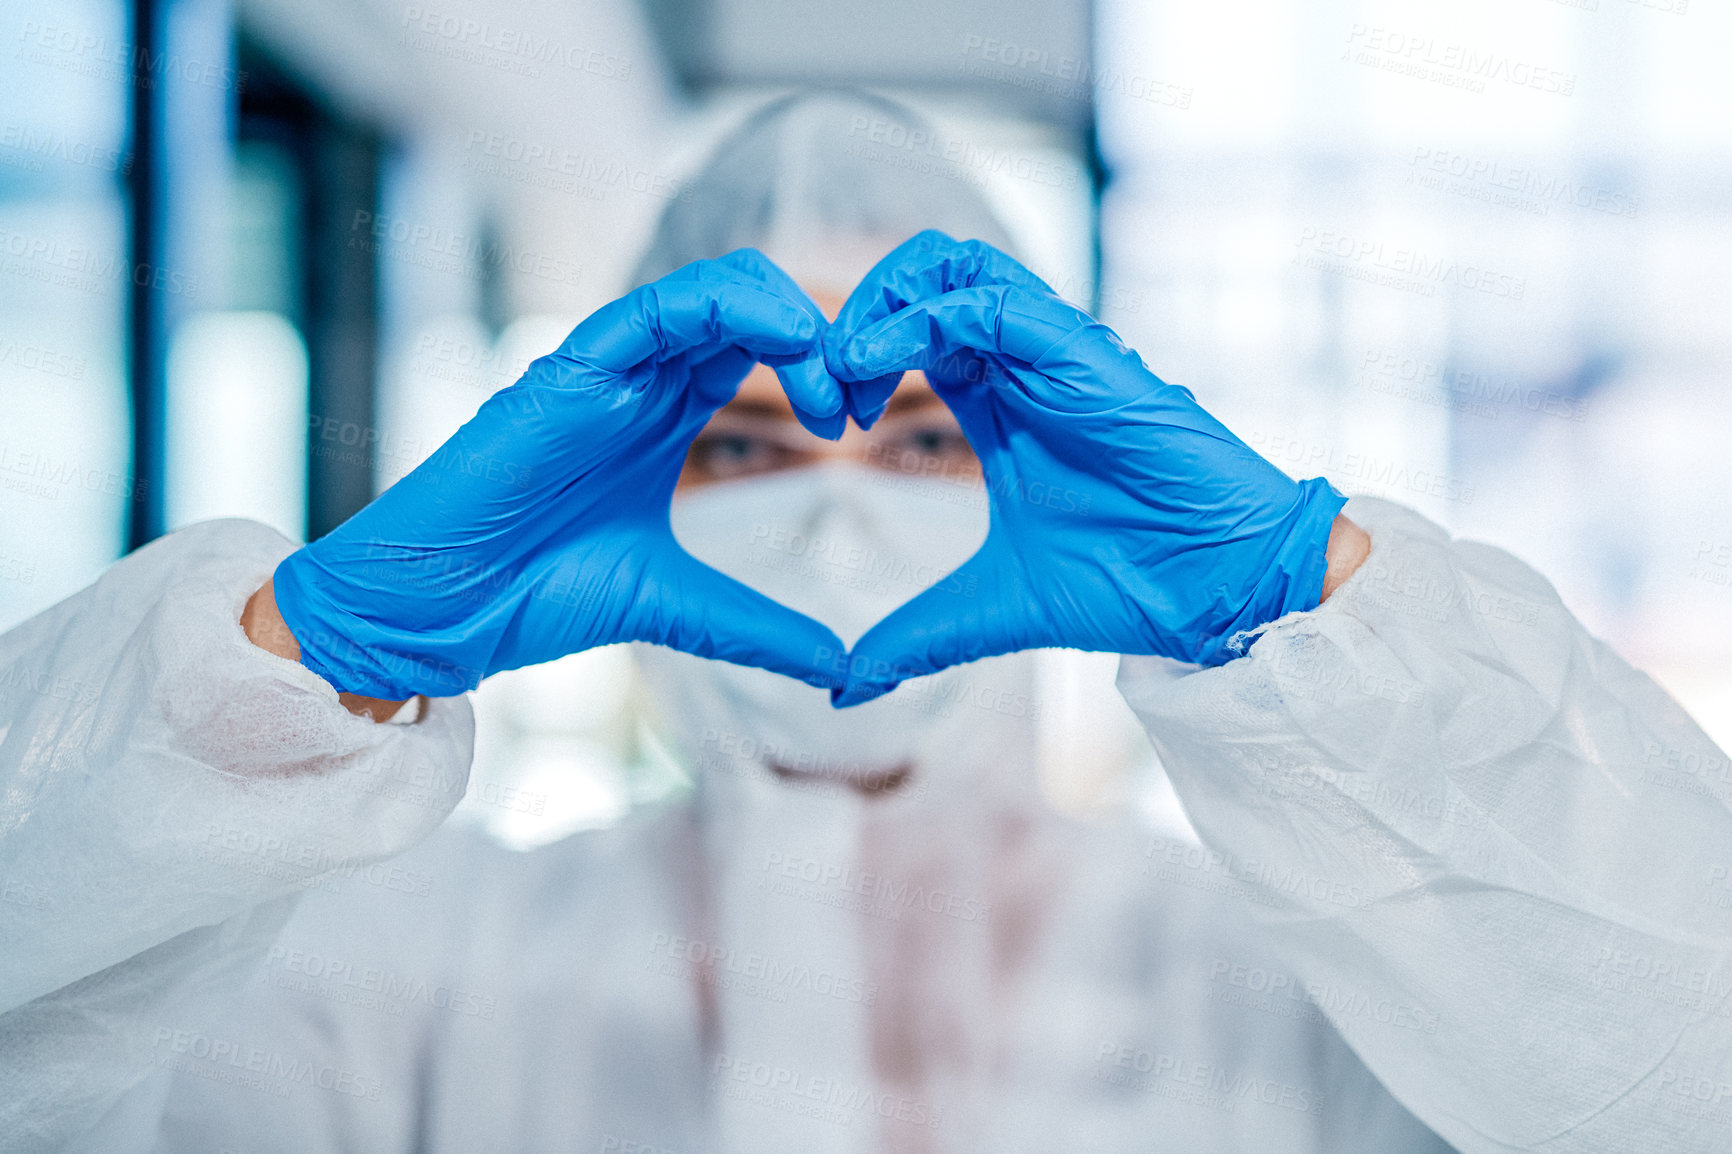 Buy stock photo Closeup shot of a healthcare worker wearing a hazmat suit and making a heart shape with her hands